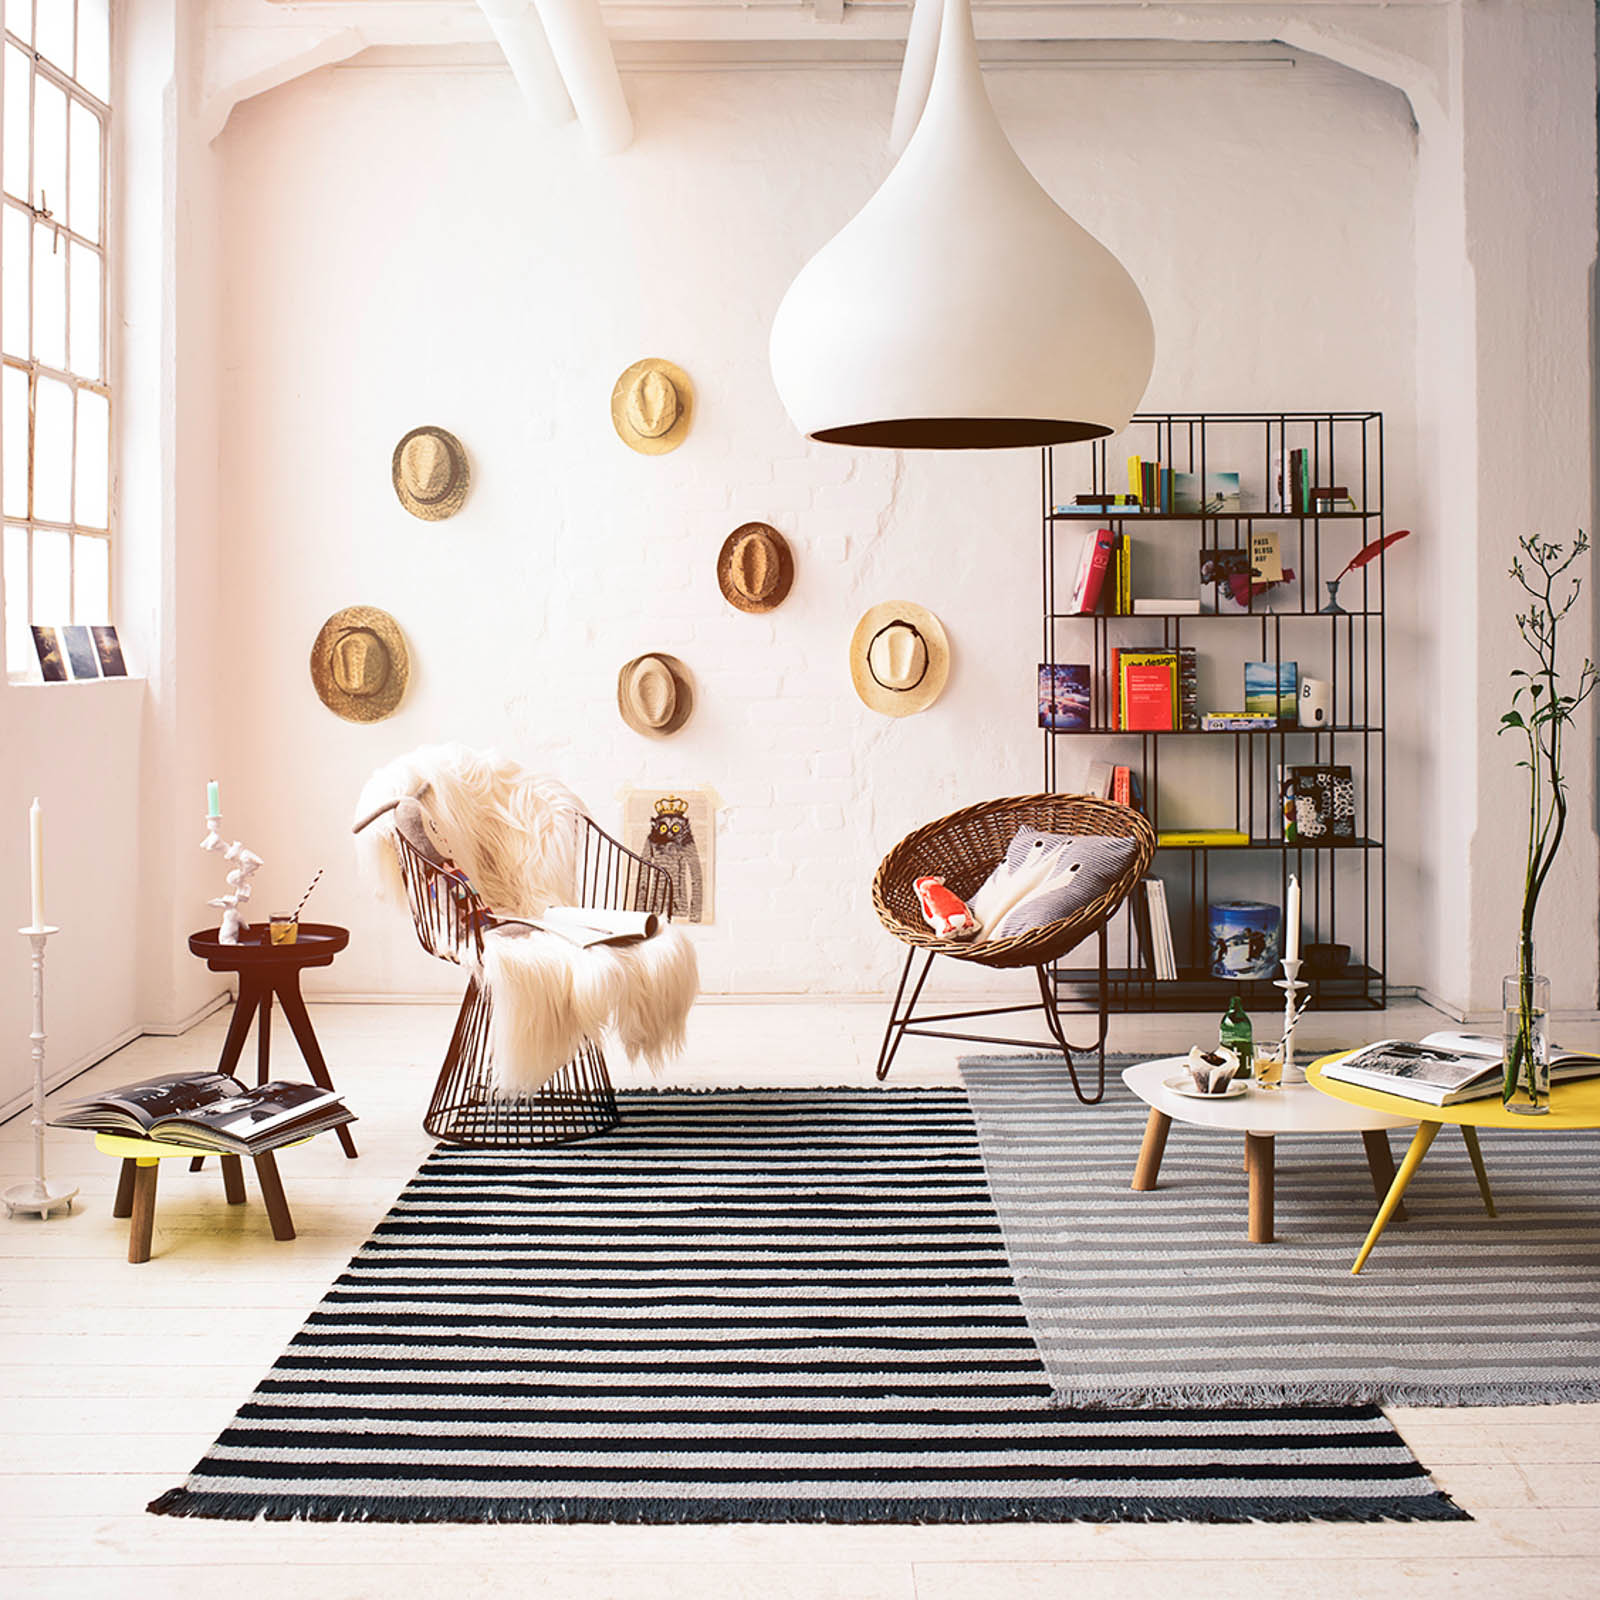 Noble Stripes Rug 0010 01 by Carpets & Co in Black and White